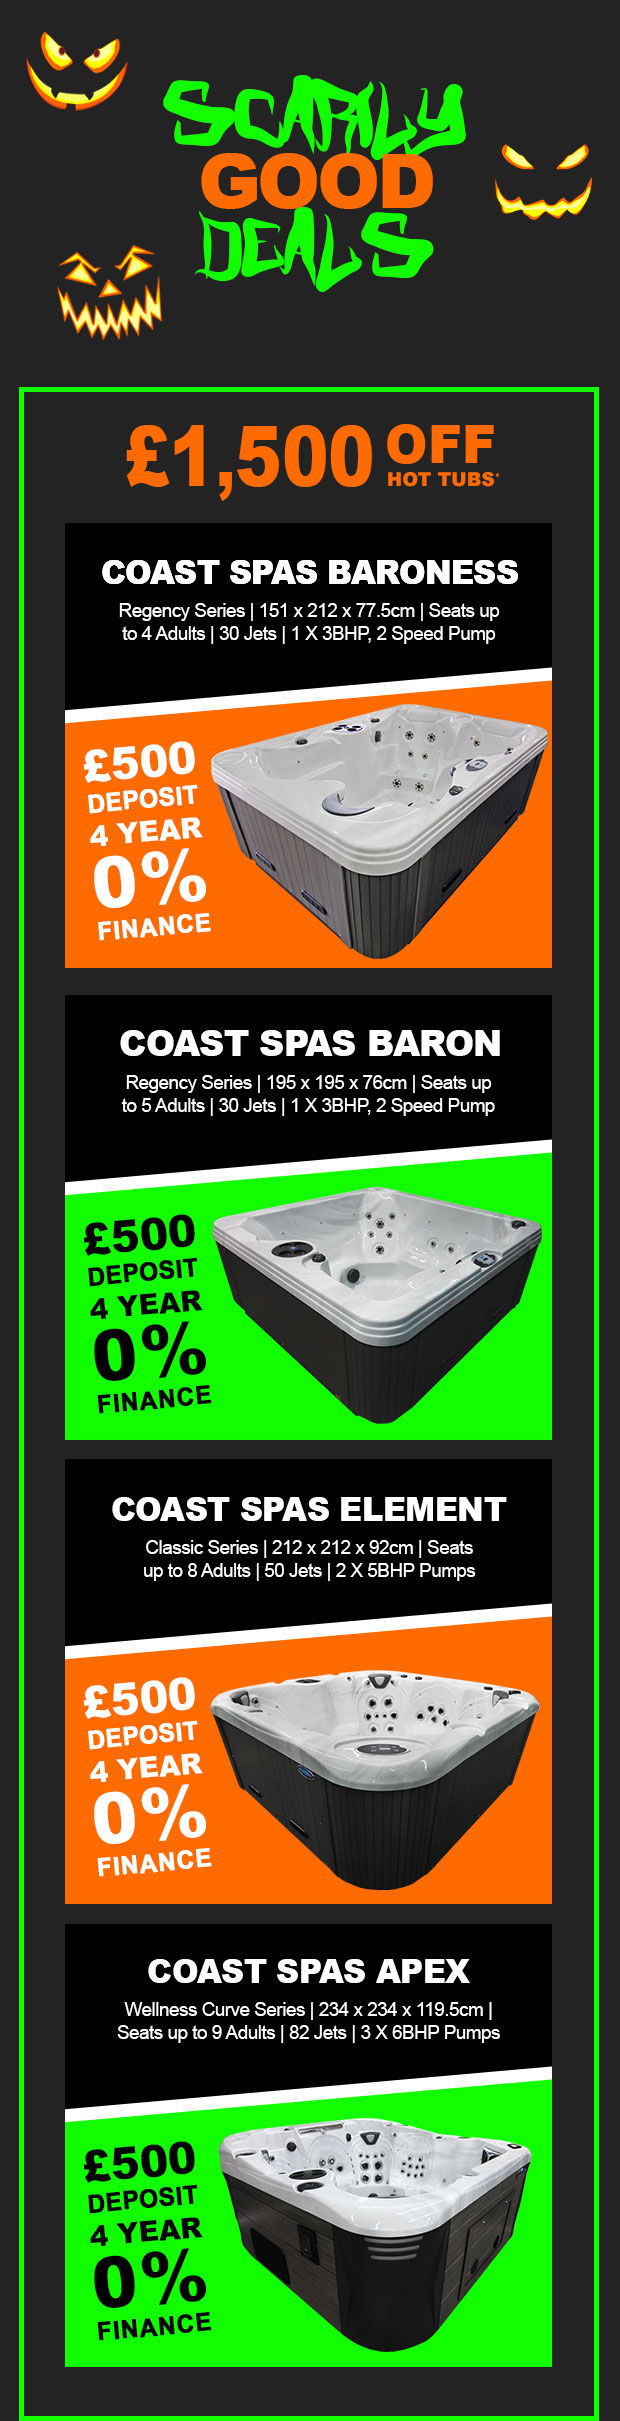 October Hot Tub Offers